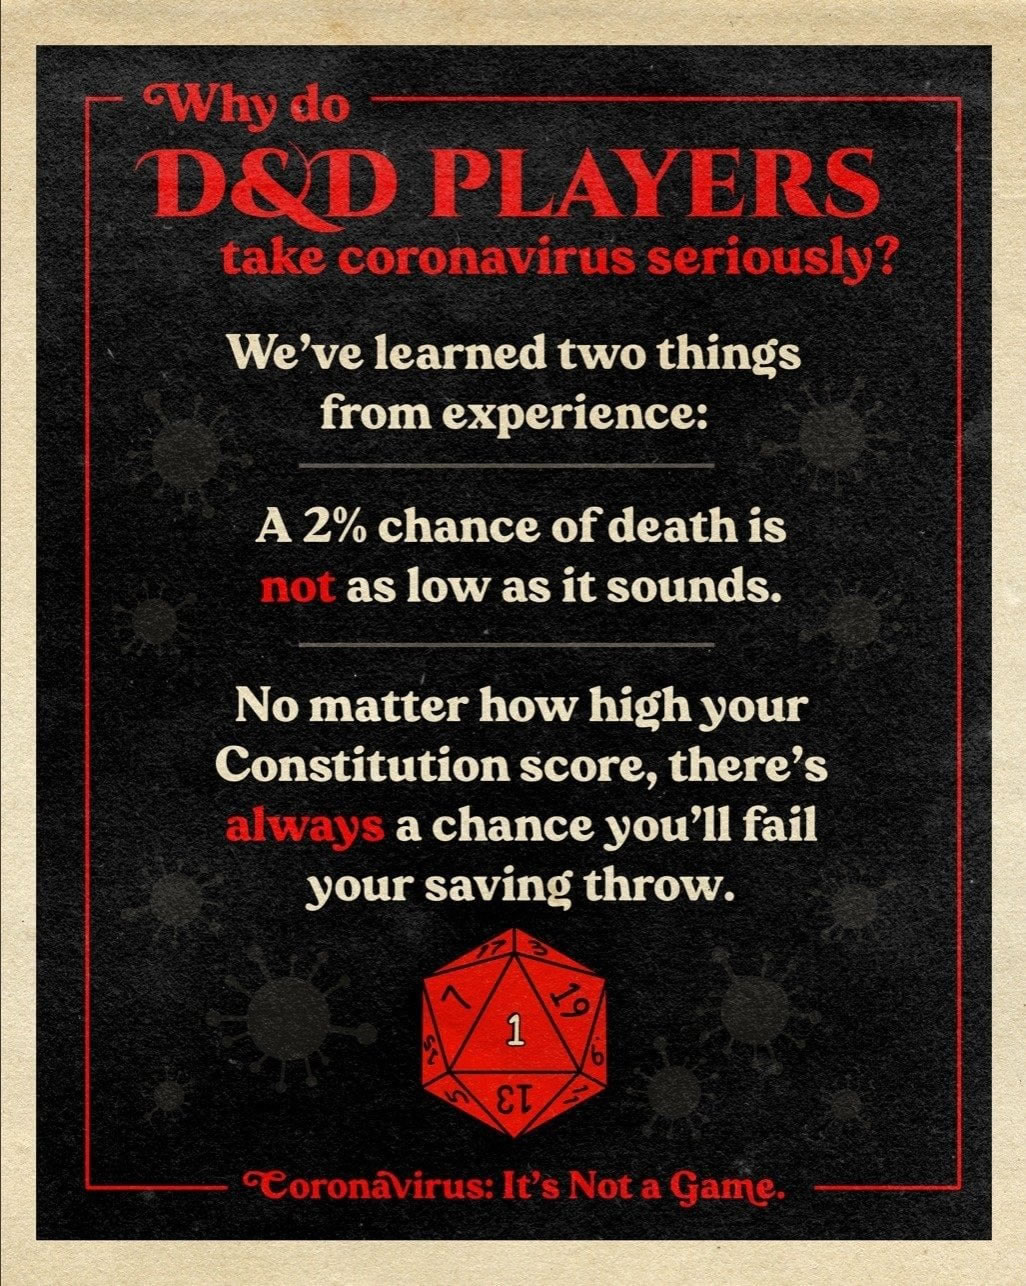 "Meme: ""Why do D&D players take coronavirus seriously? We've learned two things from experience: A 2% chance of death is NOT as low as it sounds, and no matter how high your constitution score, there's ALWAYS a chance you'll fail your saving throw."""